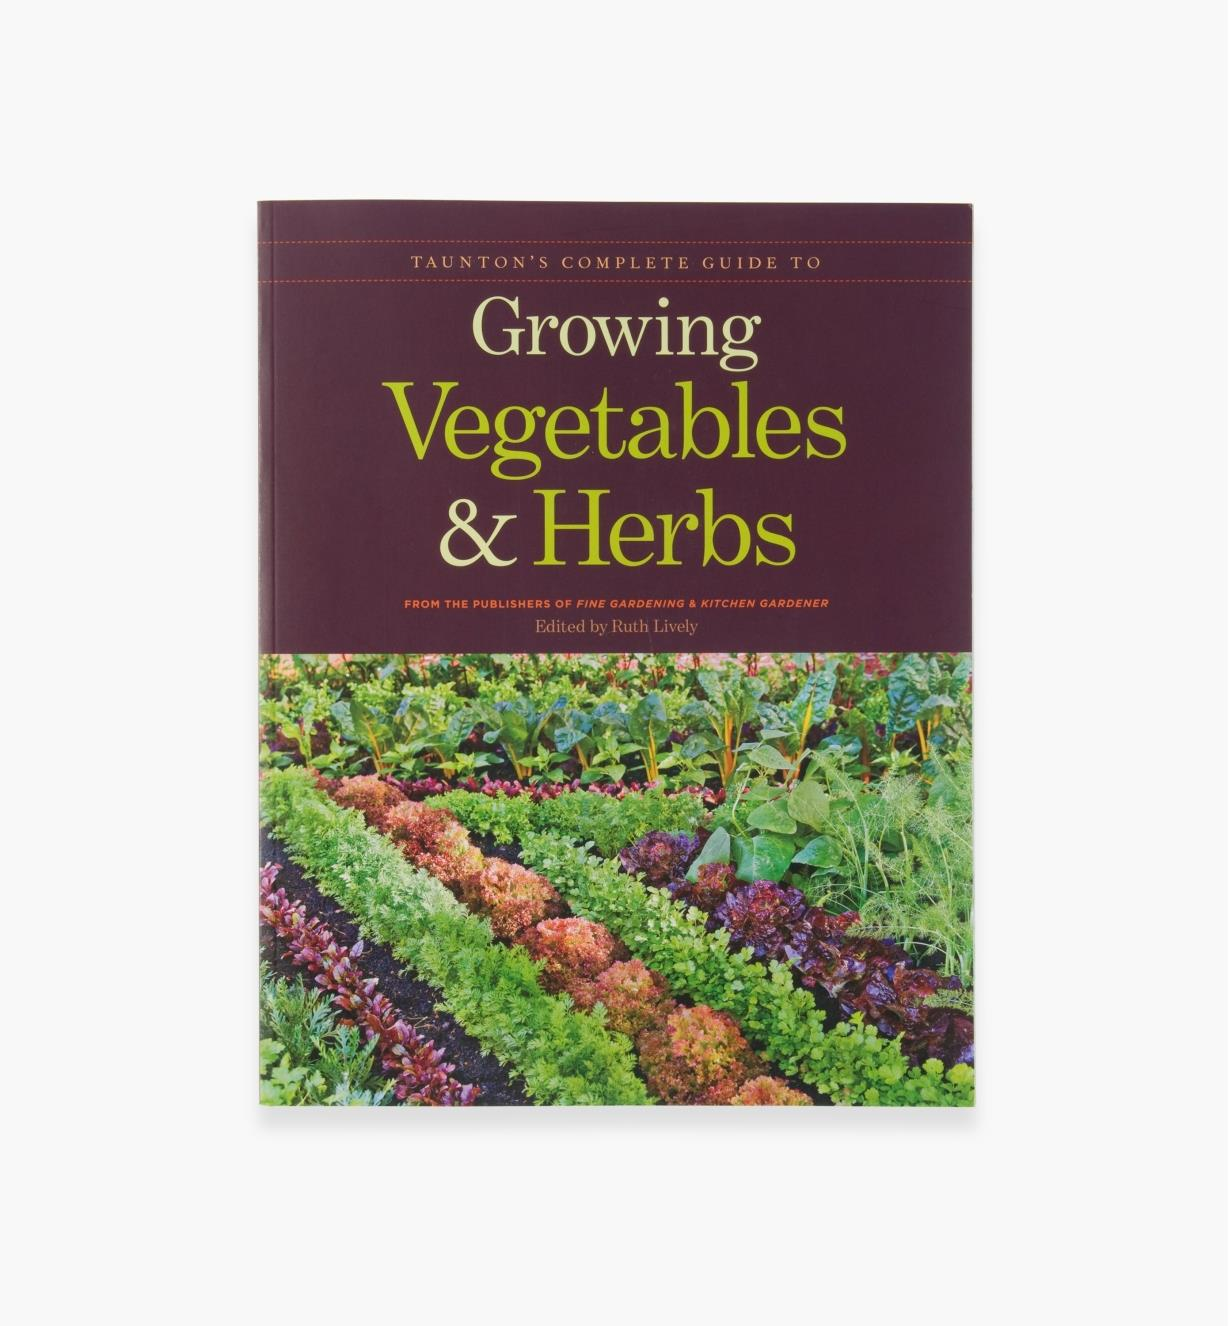 LA871 - Growing Vegetables & Herbs